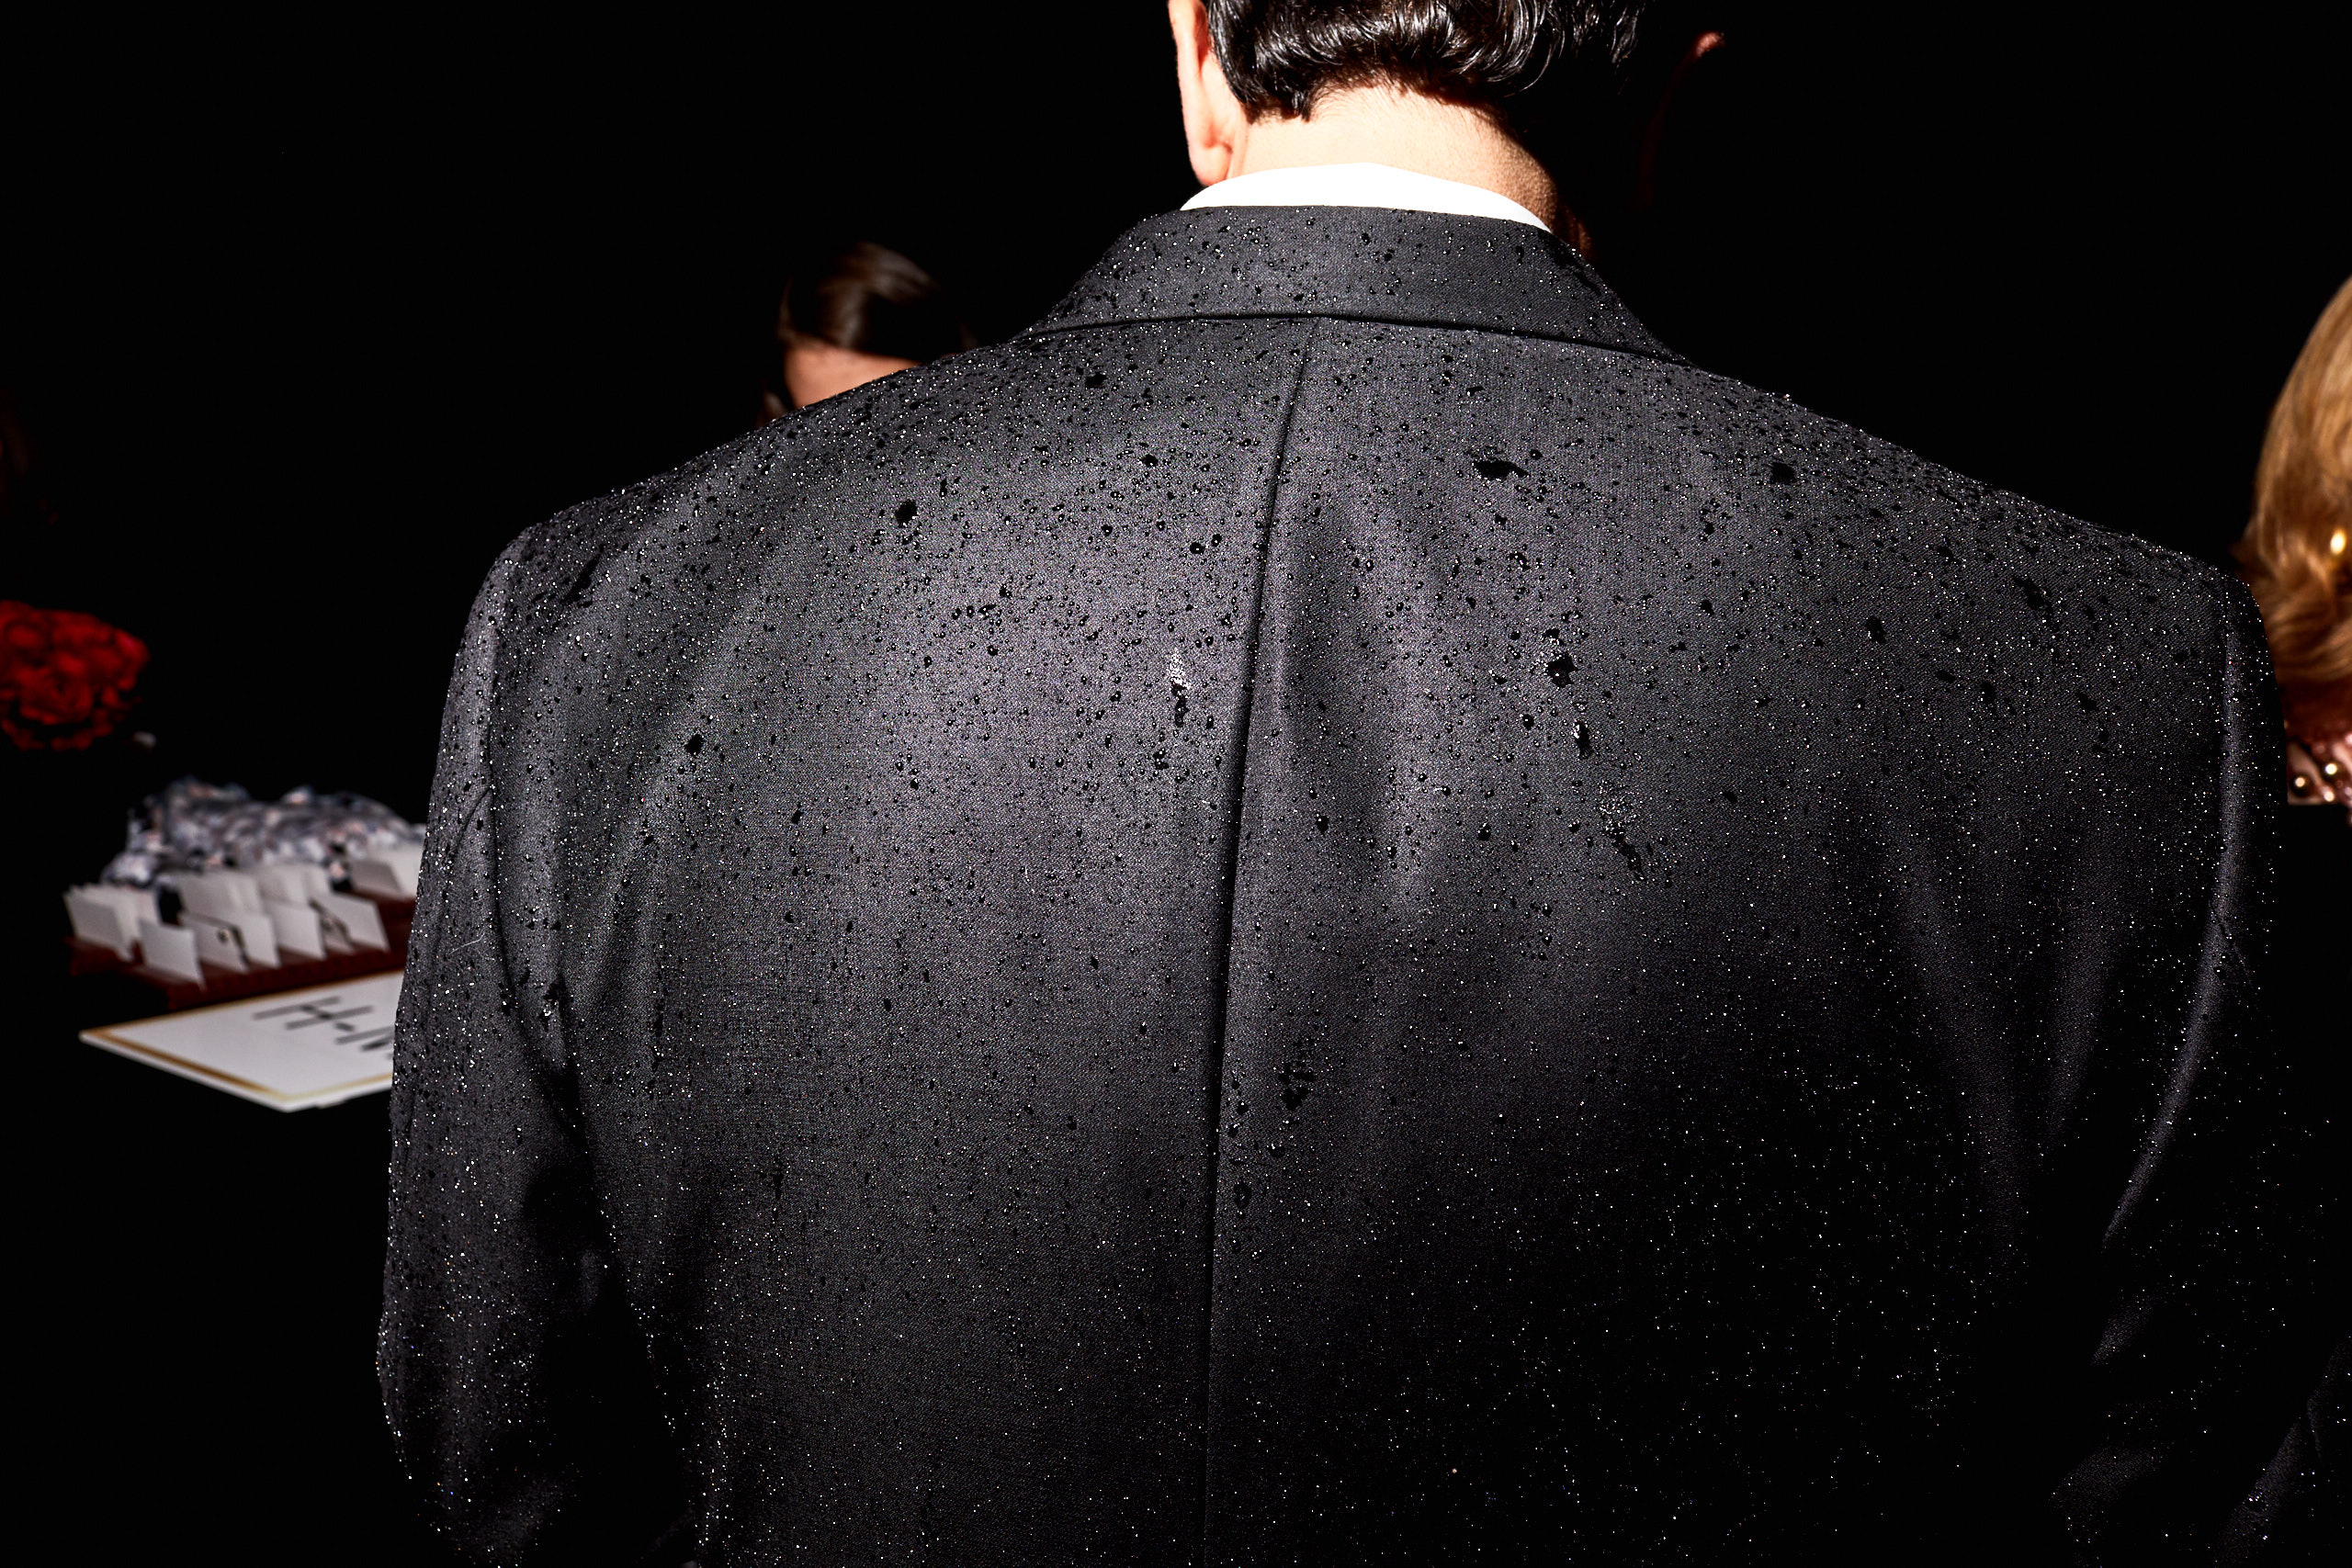 Rain on a guest's coat at the Time 100 Gala at Jazz at Lincoln Center on April 25, 2017 in New York City.